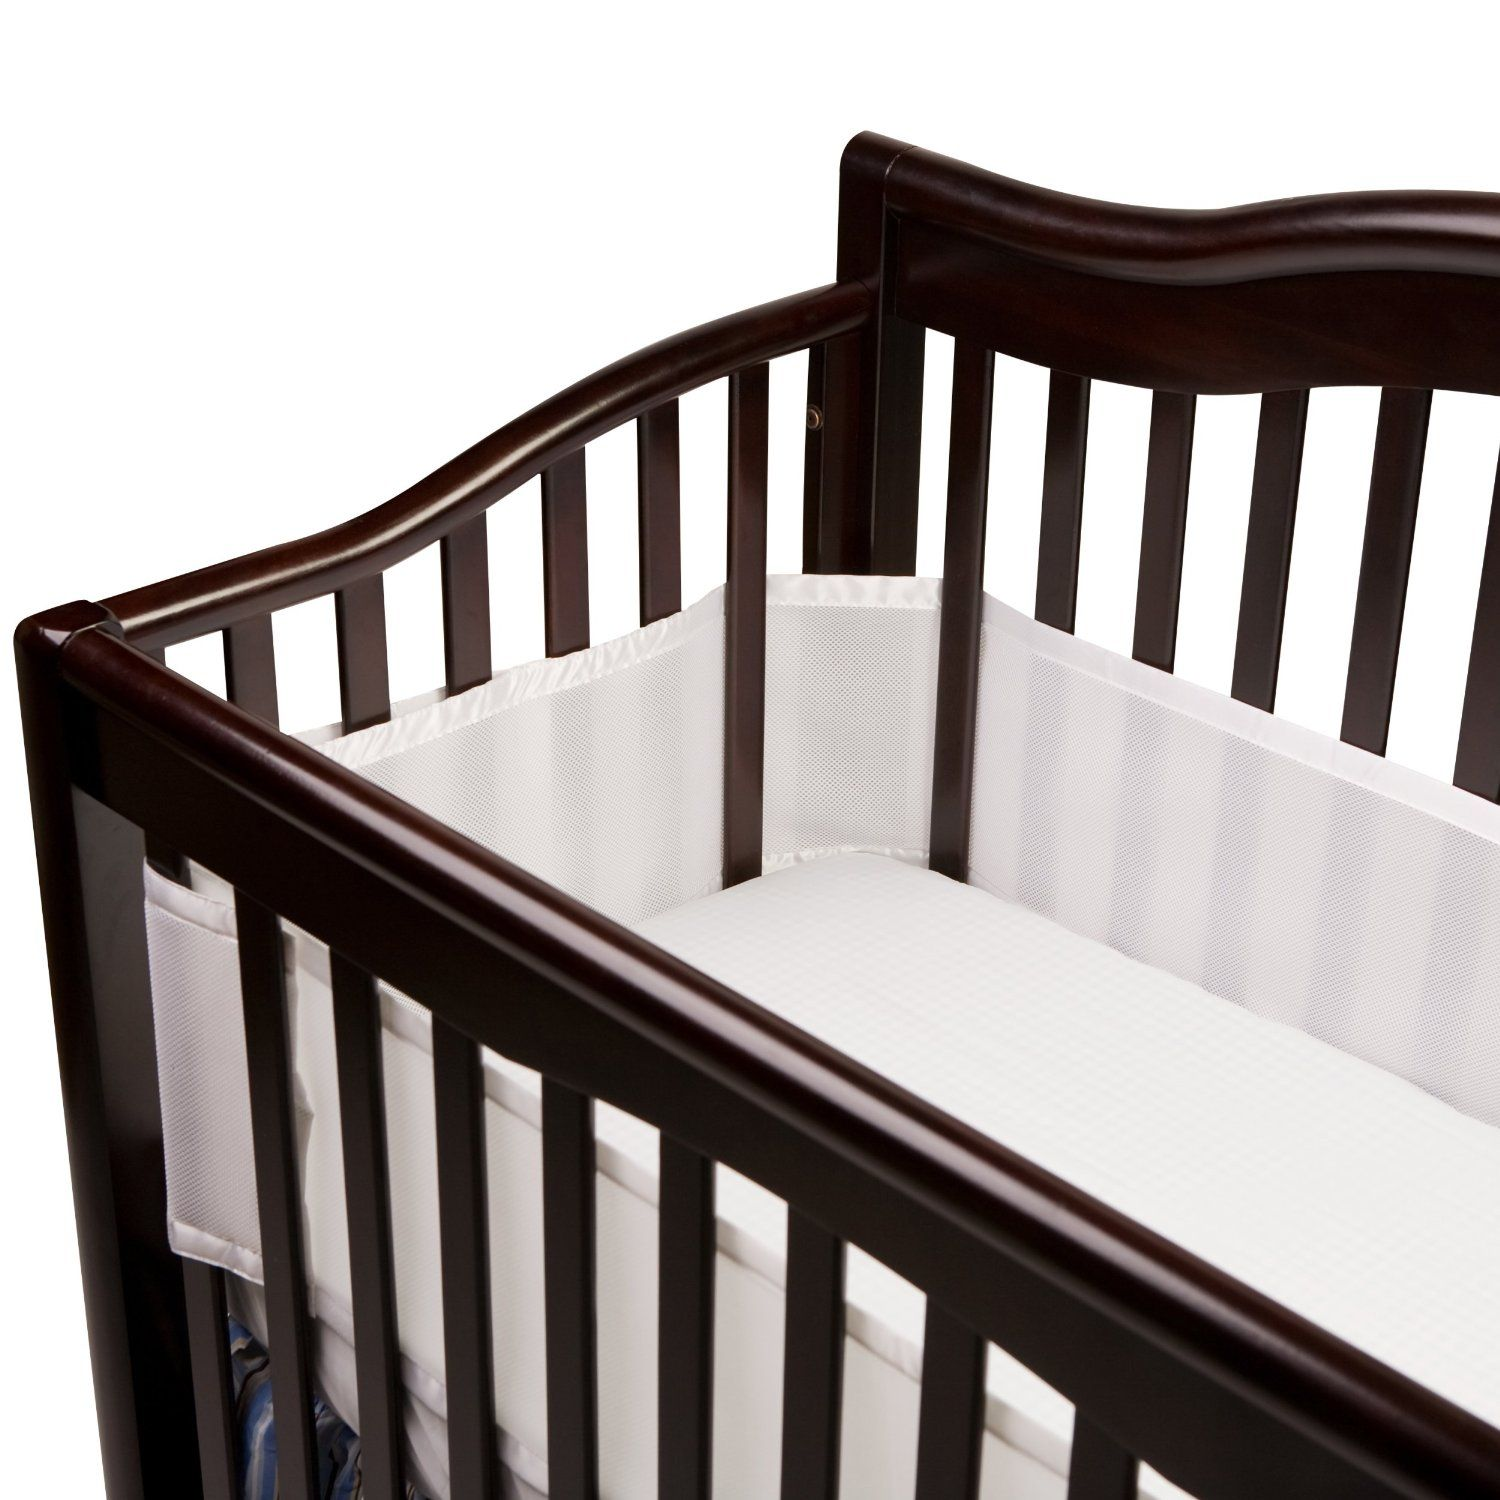 breathable baby universal crib bumper ohh well isnt that a unique